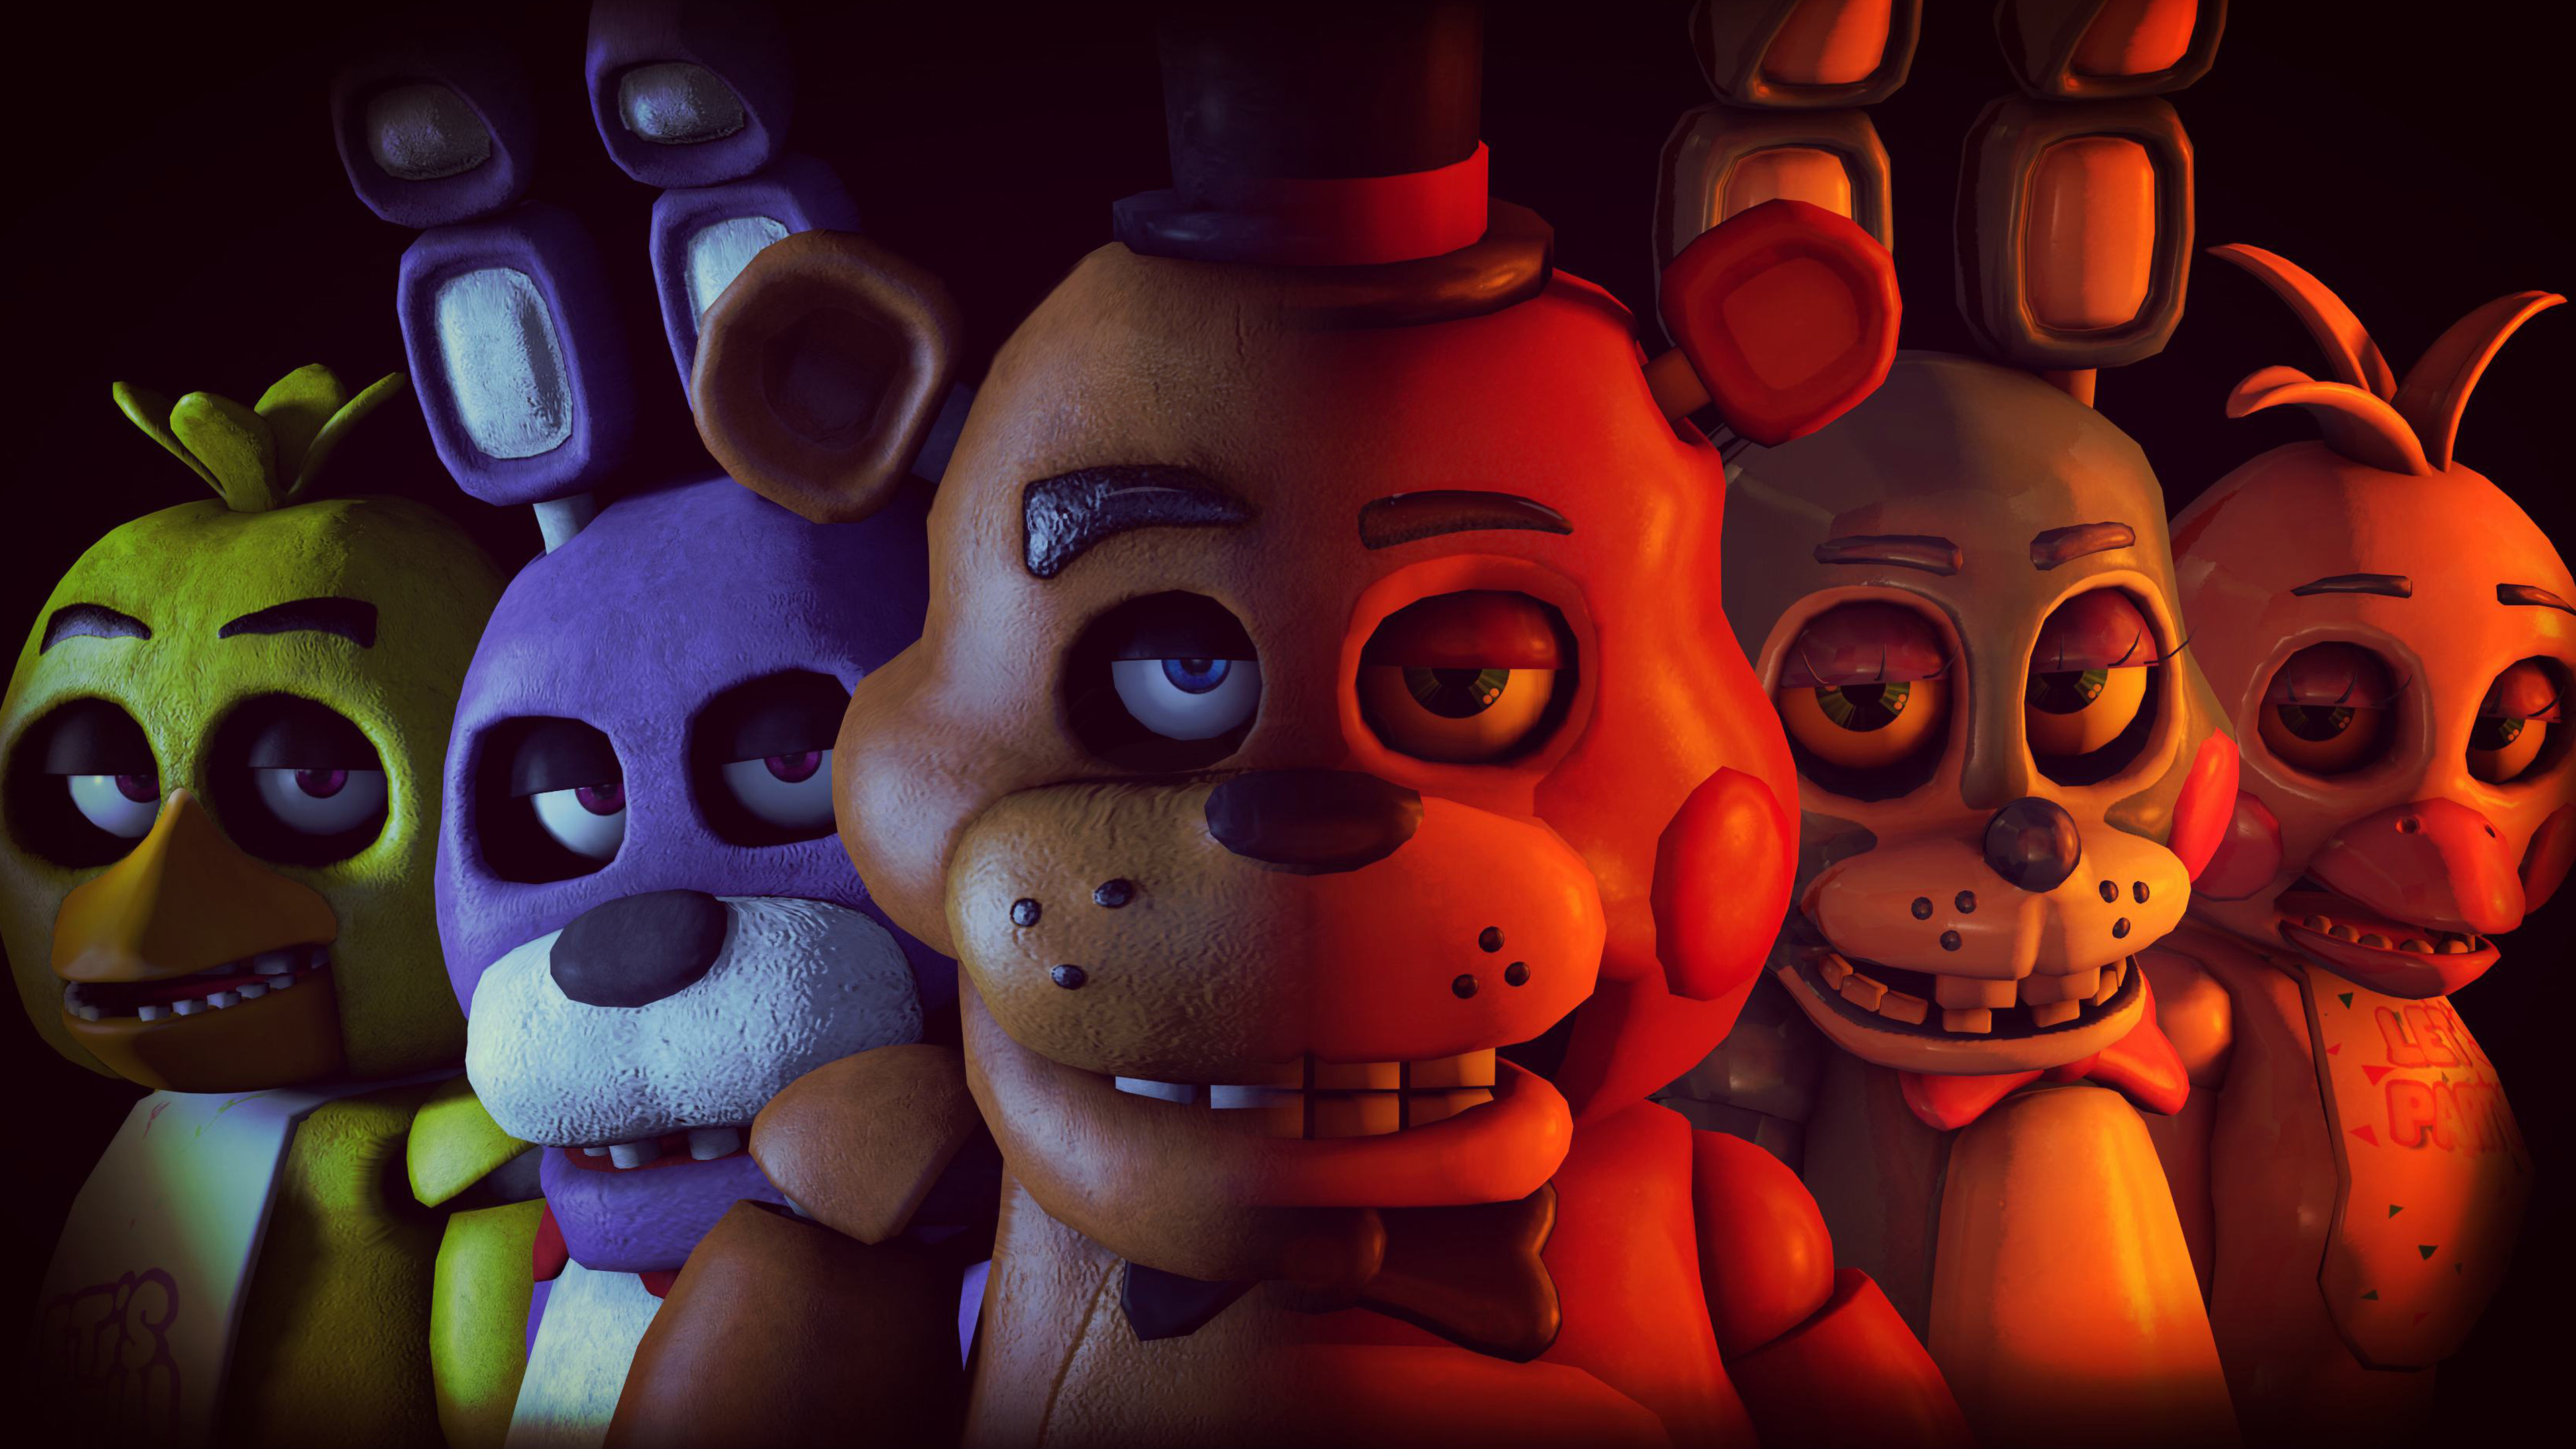 Five Nights At Freddy's Wallpapers 81+ background pictures